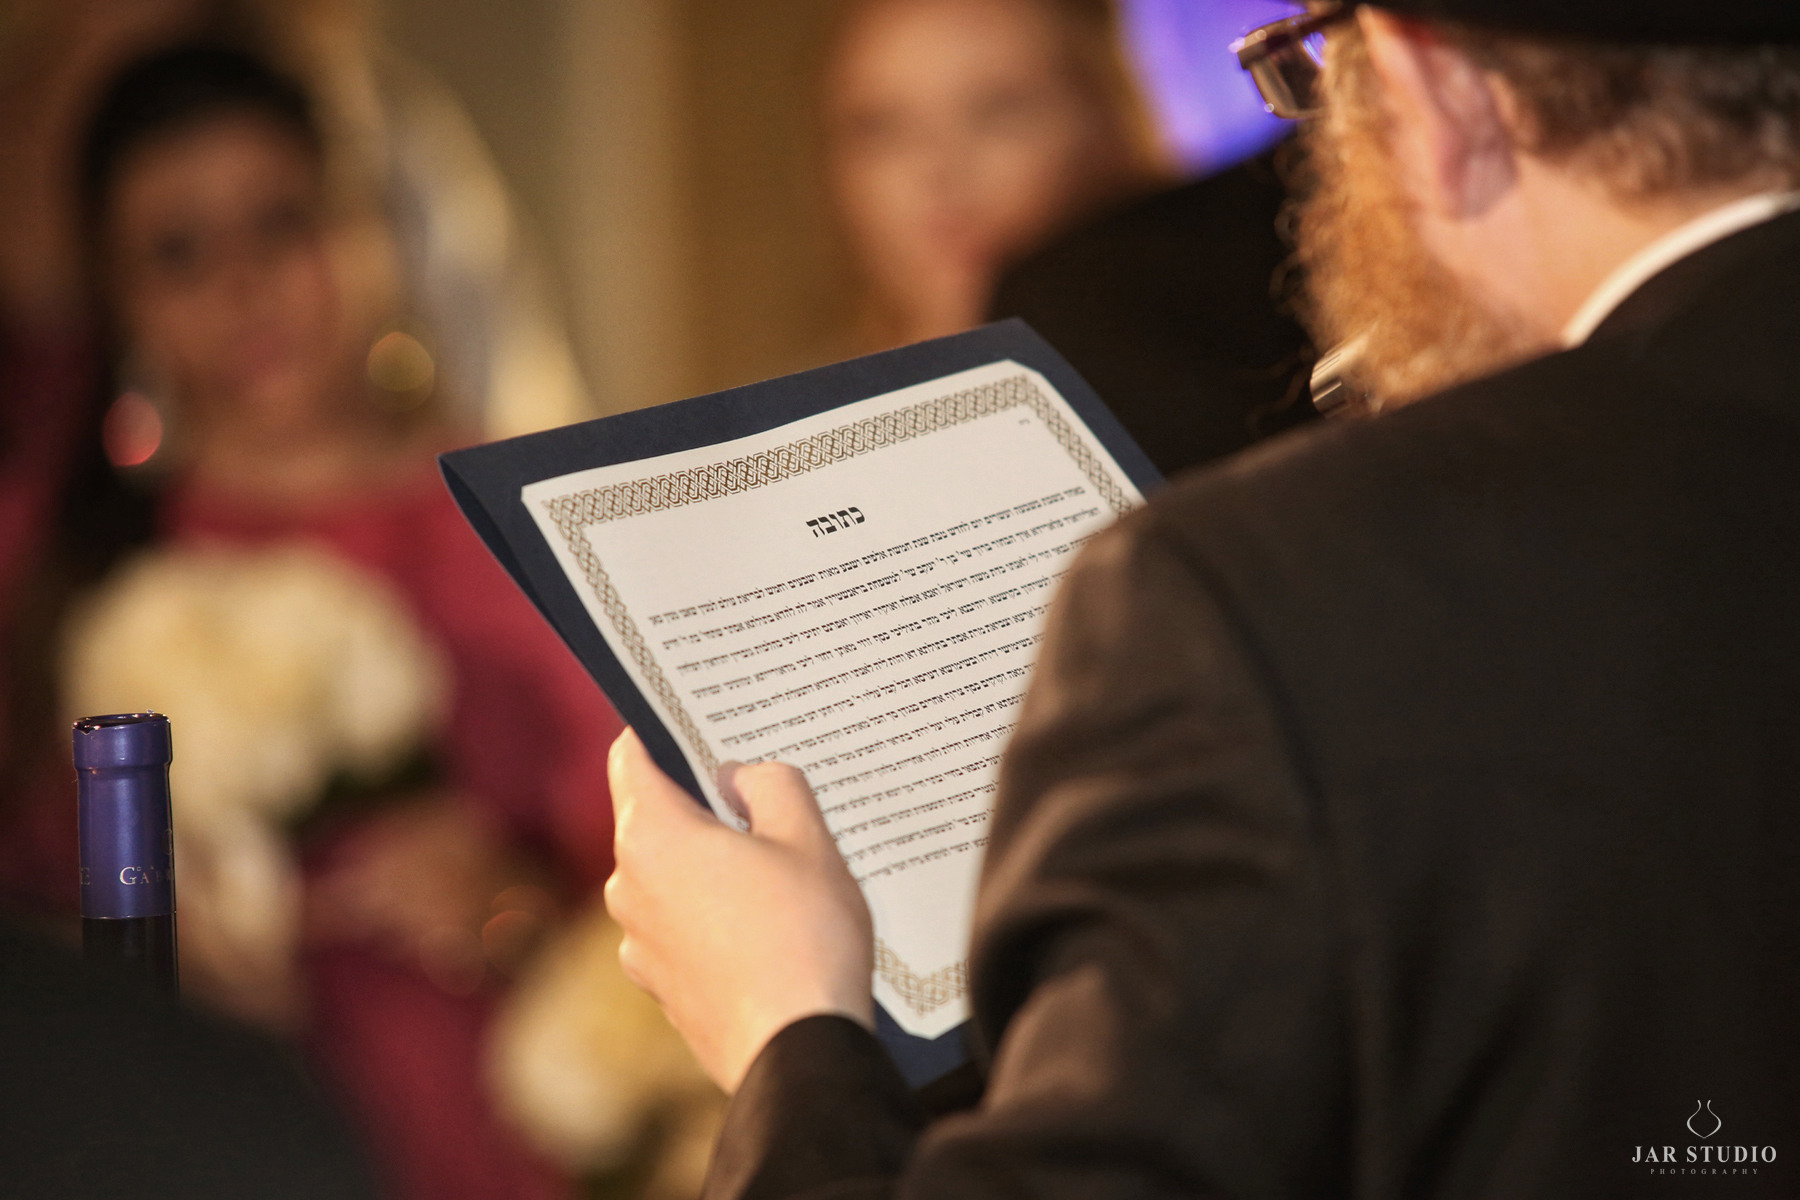 21-jewish-wedding-ceremony-rabbi-ketubah-hebrew-photographer-jarstudio.jpg